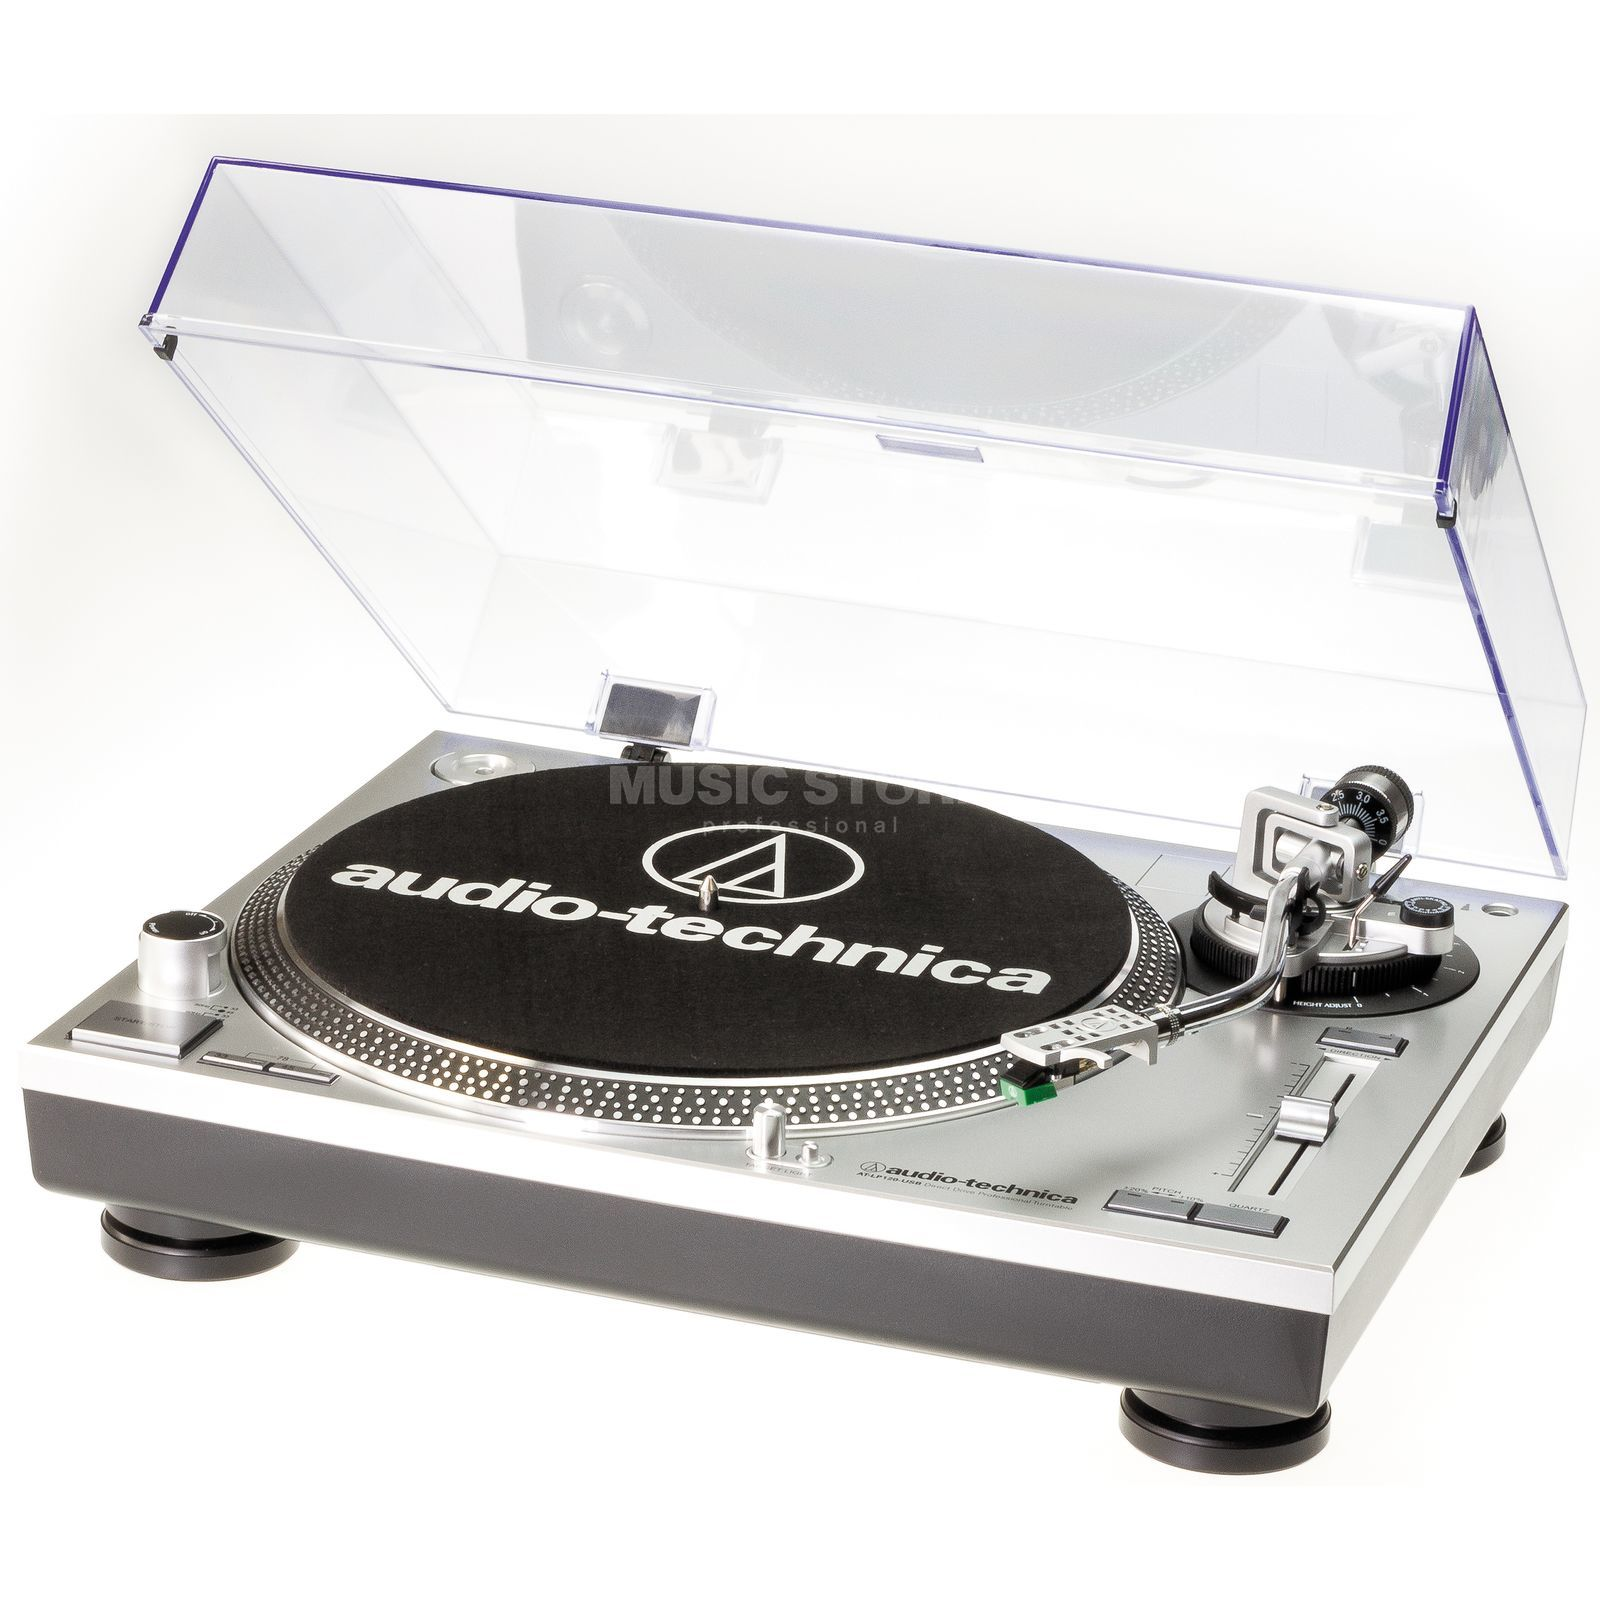 Audio-Technica AT-LP120USBHC Turntable, Direct Drive USB Zdjęcie produktu